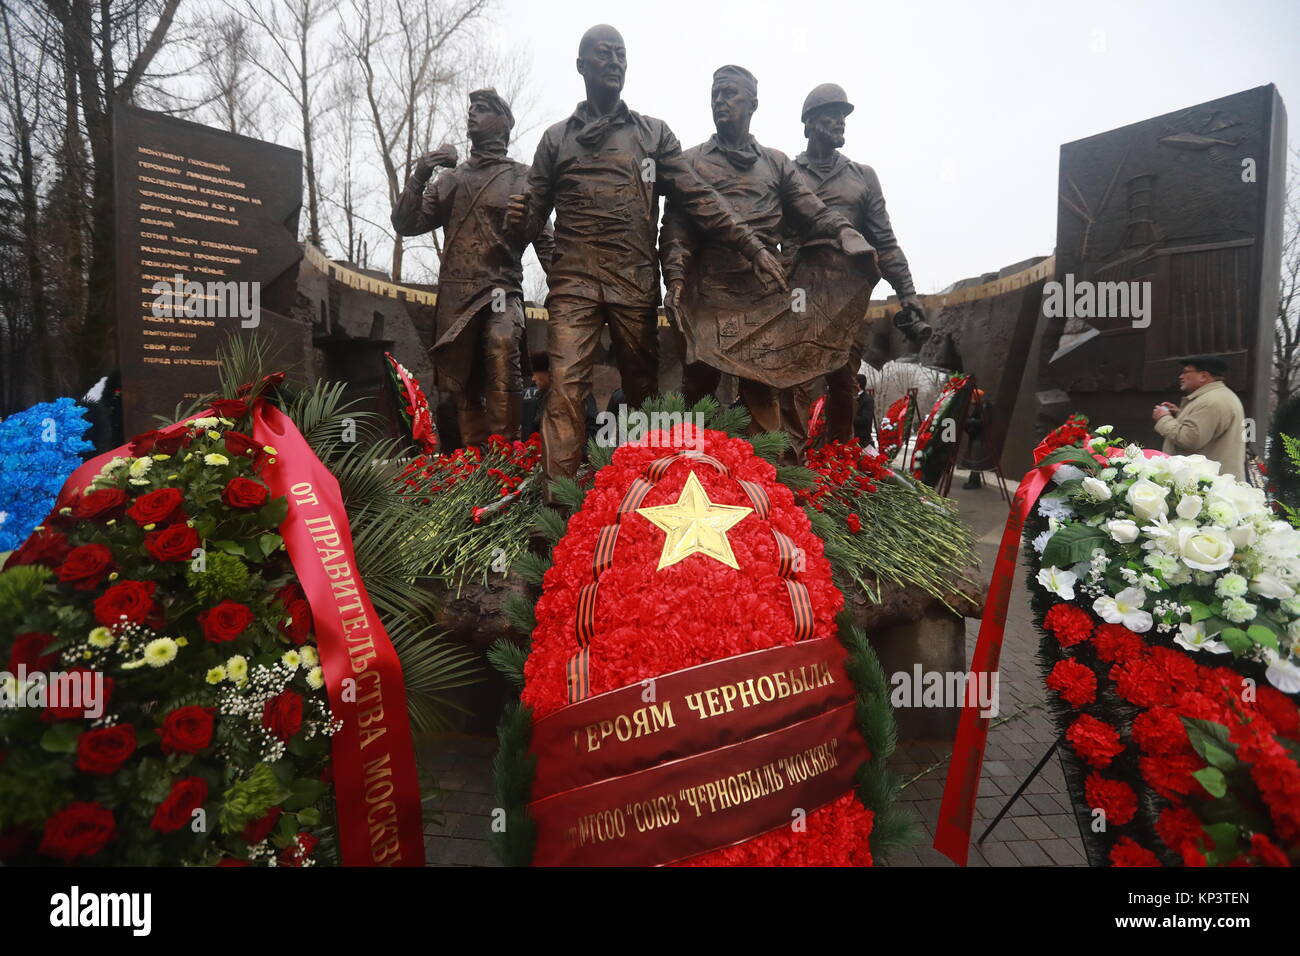 Moscow, Russia. 13th Dec, 2017. Flowers and wreaths seen on a monument to 'Chernobyl liquidators', people - Stock Image